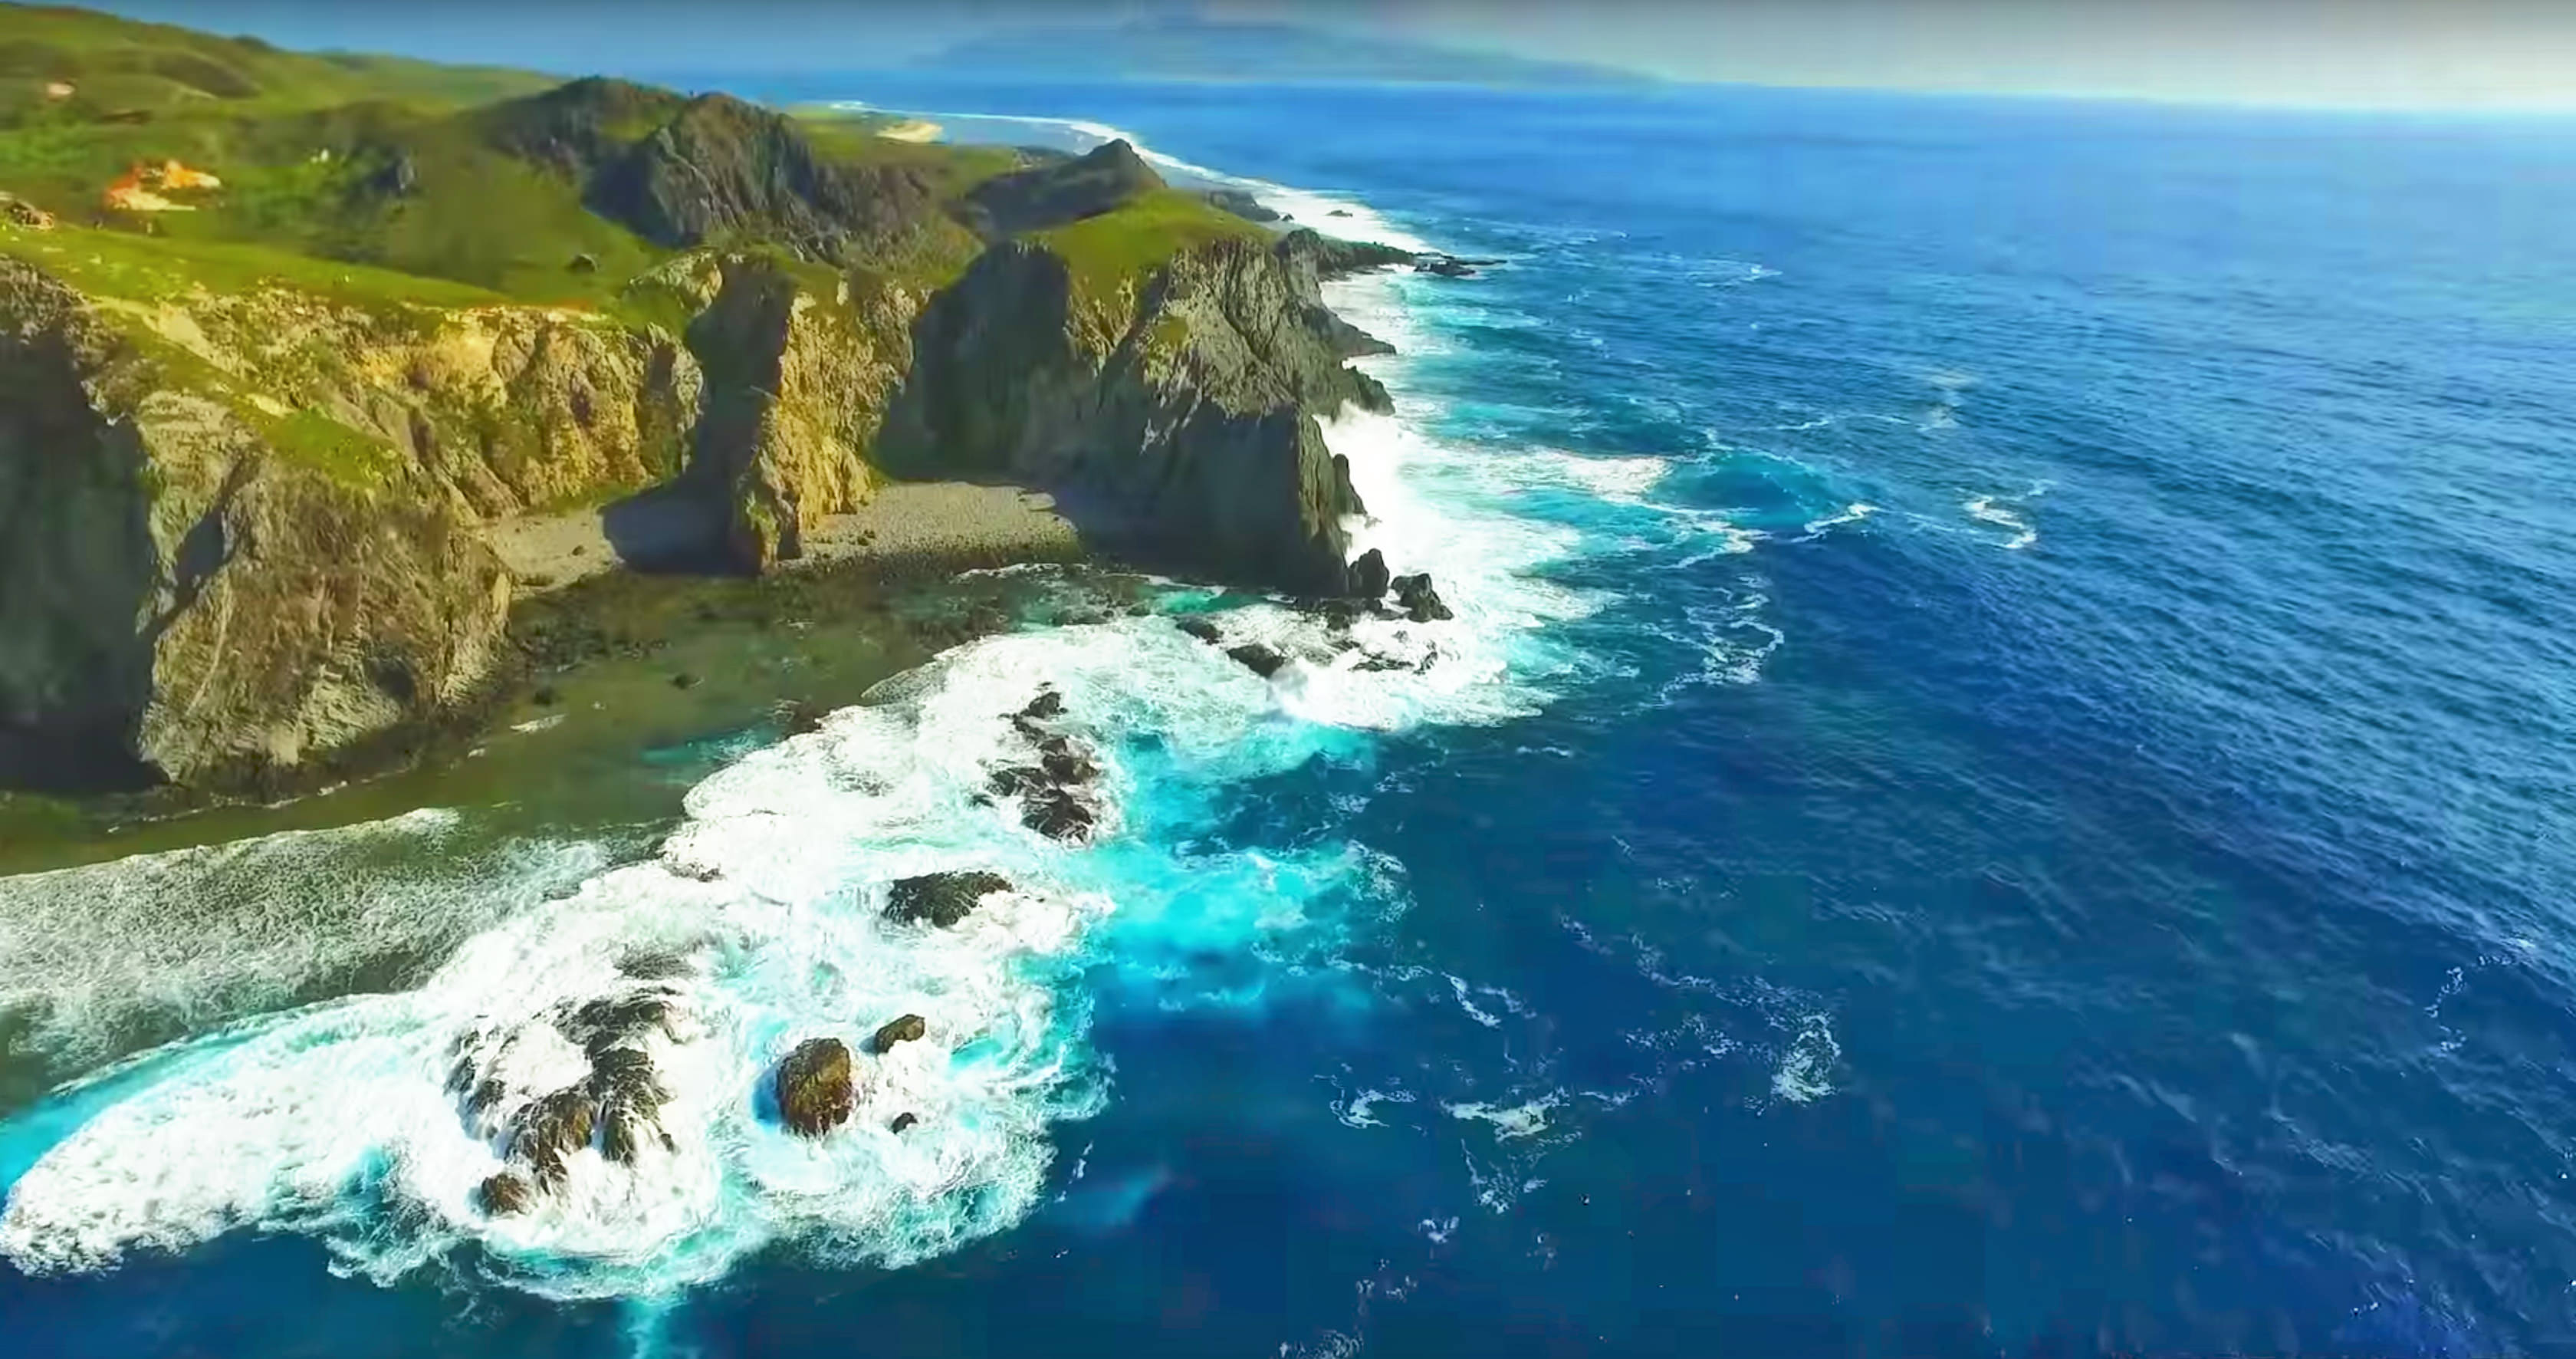 latest drone with Batanes Philippines Aerial Tour on Geek Deals Save 372 On Dell Xps 8300 Desktop Bundle 1475503 additionally Uav Propellers together with Volkswagen Golf 8 To Use Xl1 Like Aerodynamic Tricks 85362 additionally V2zv7j Drone Brings Birds Eye View Of Chile Quake Damage besides Spider Man Home ing  poser Michael Giacchino Reveals New Take On Classic Theme.